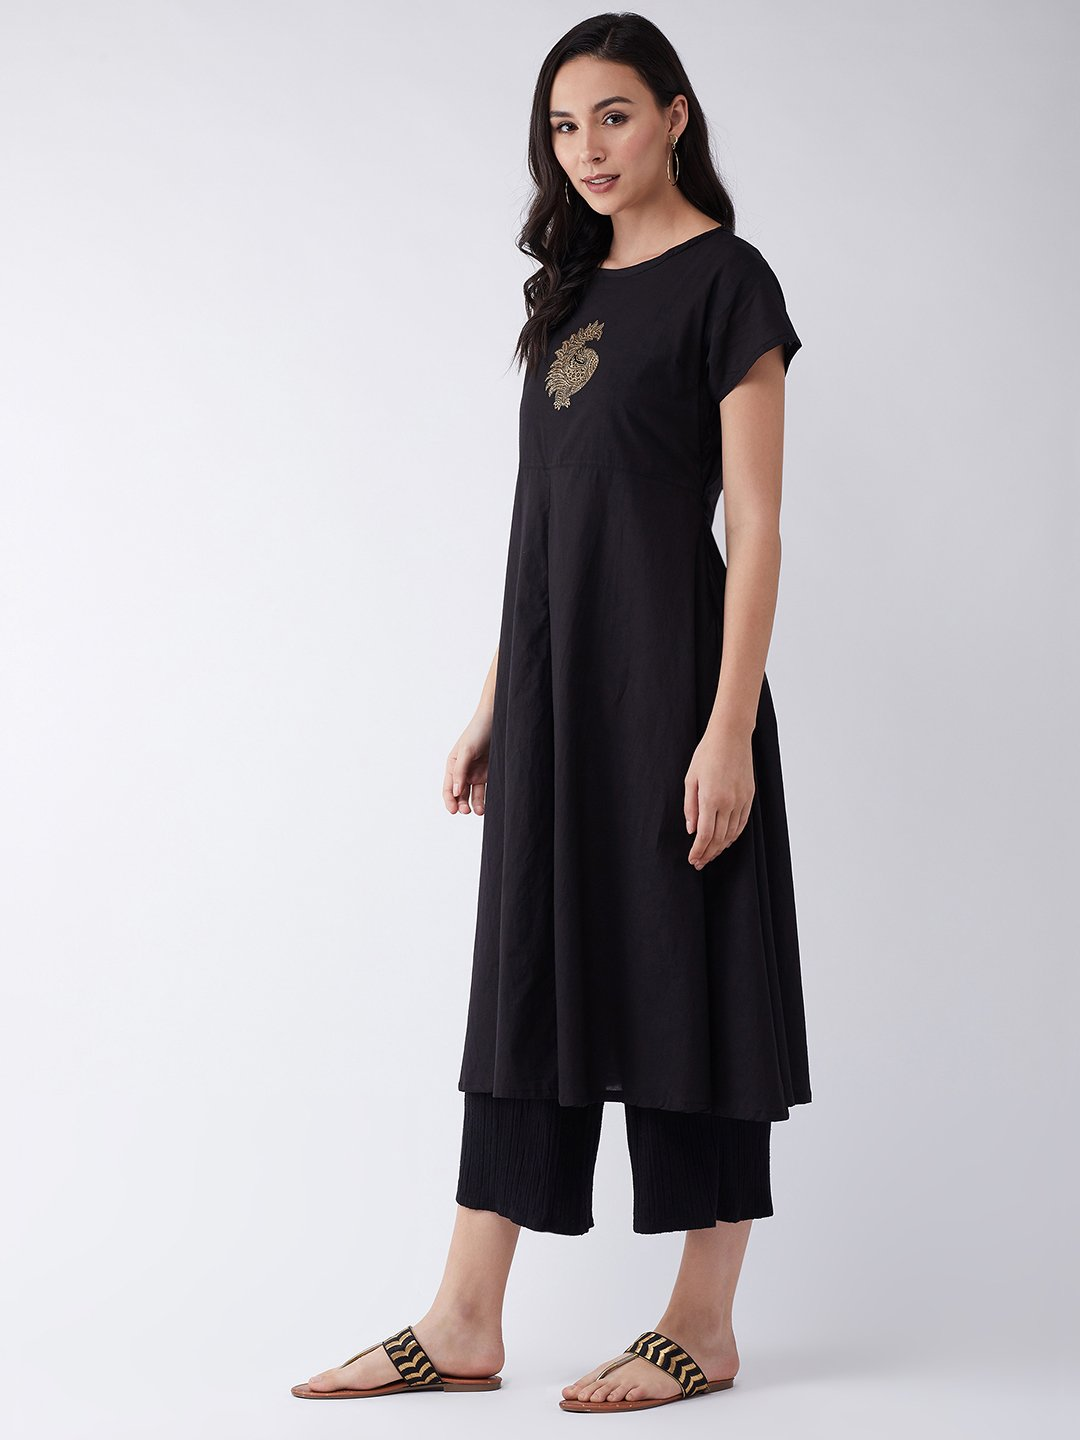 Block Printed Black Anarkali Kurta